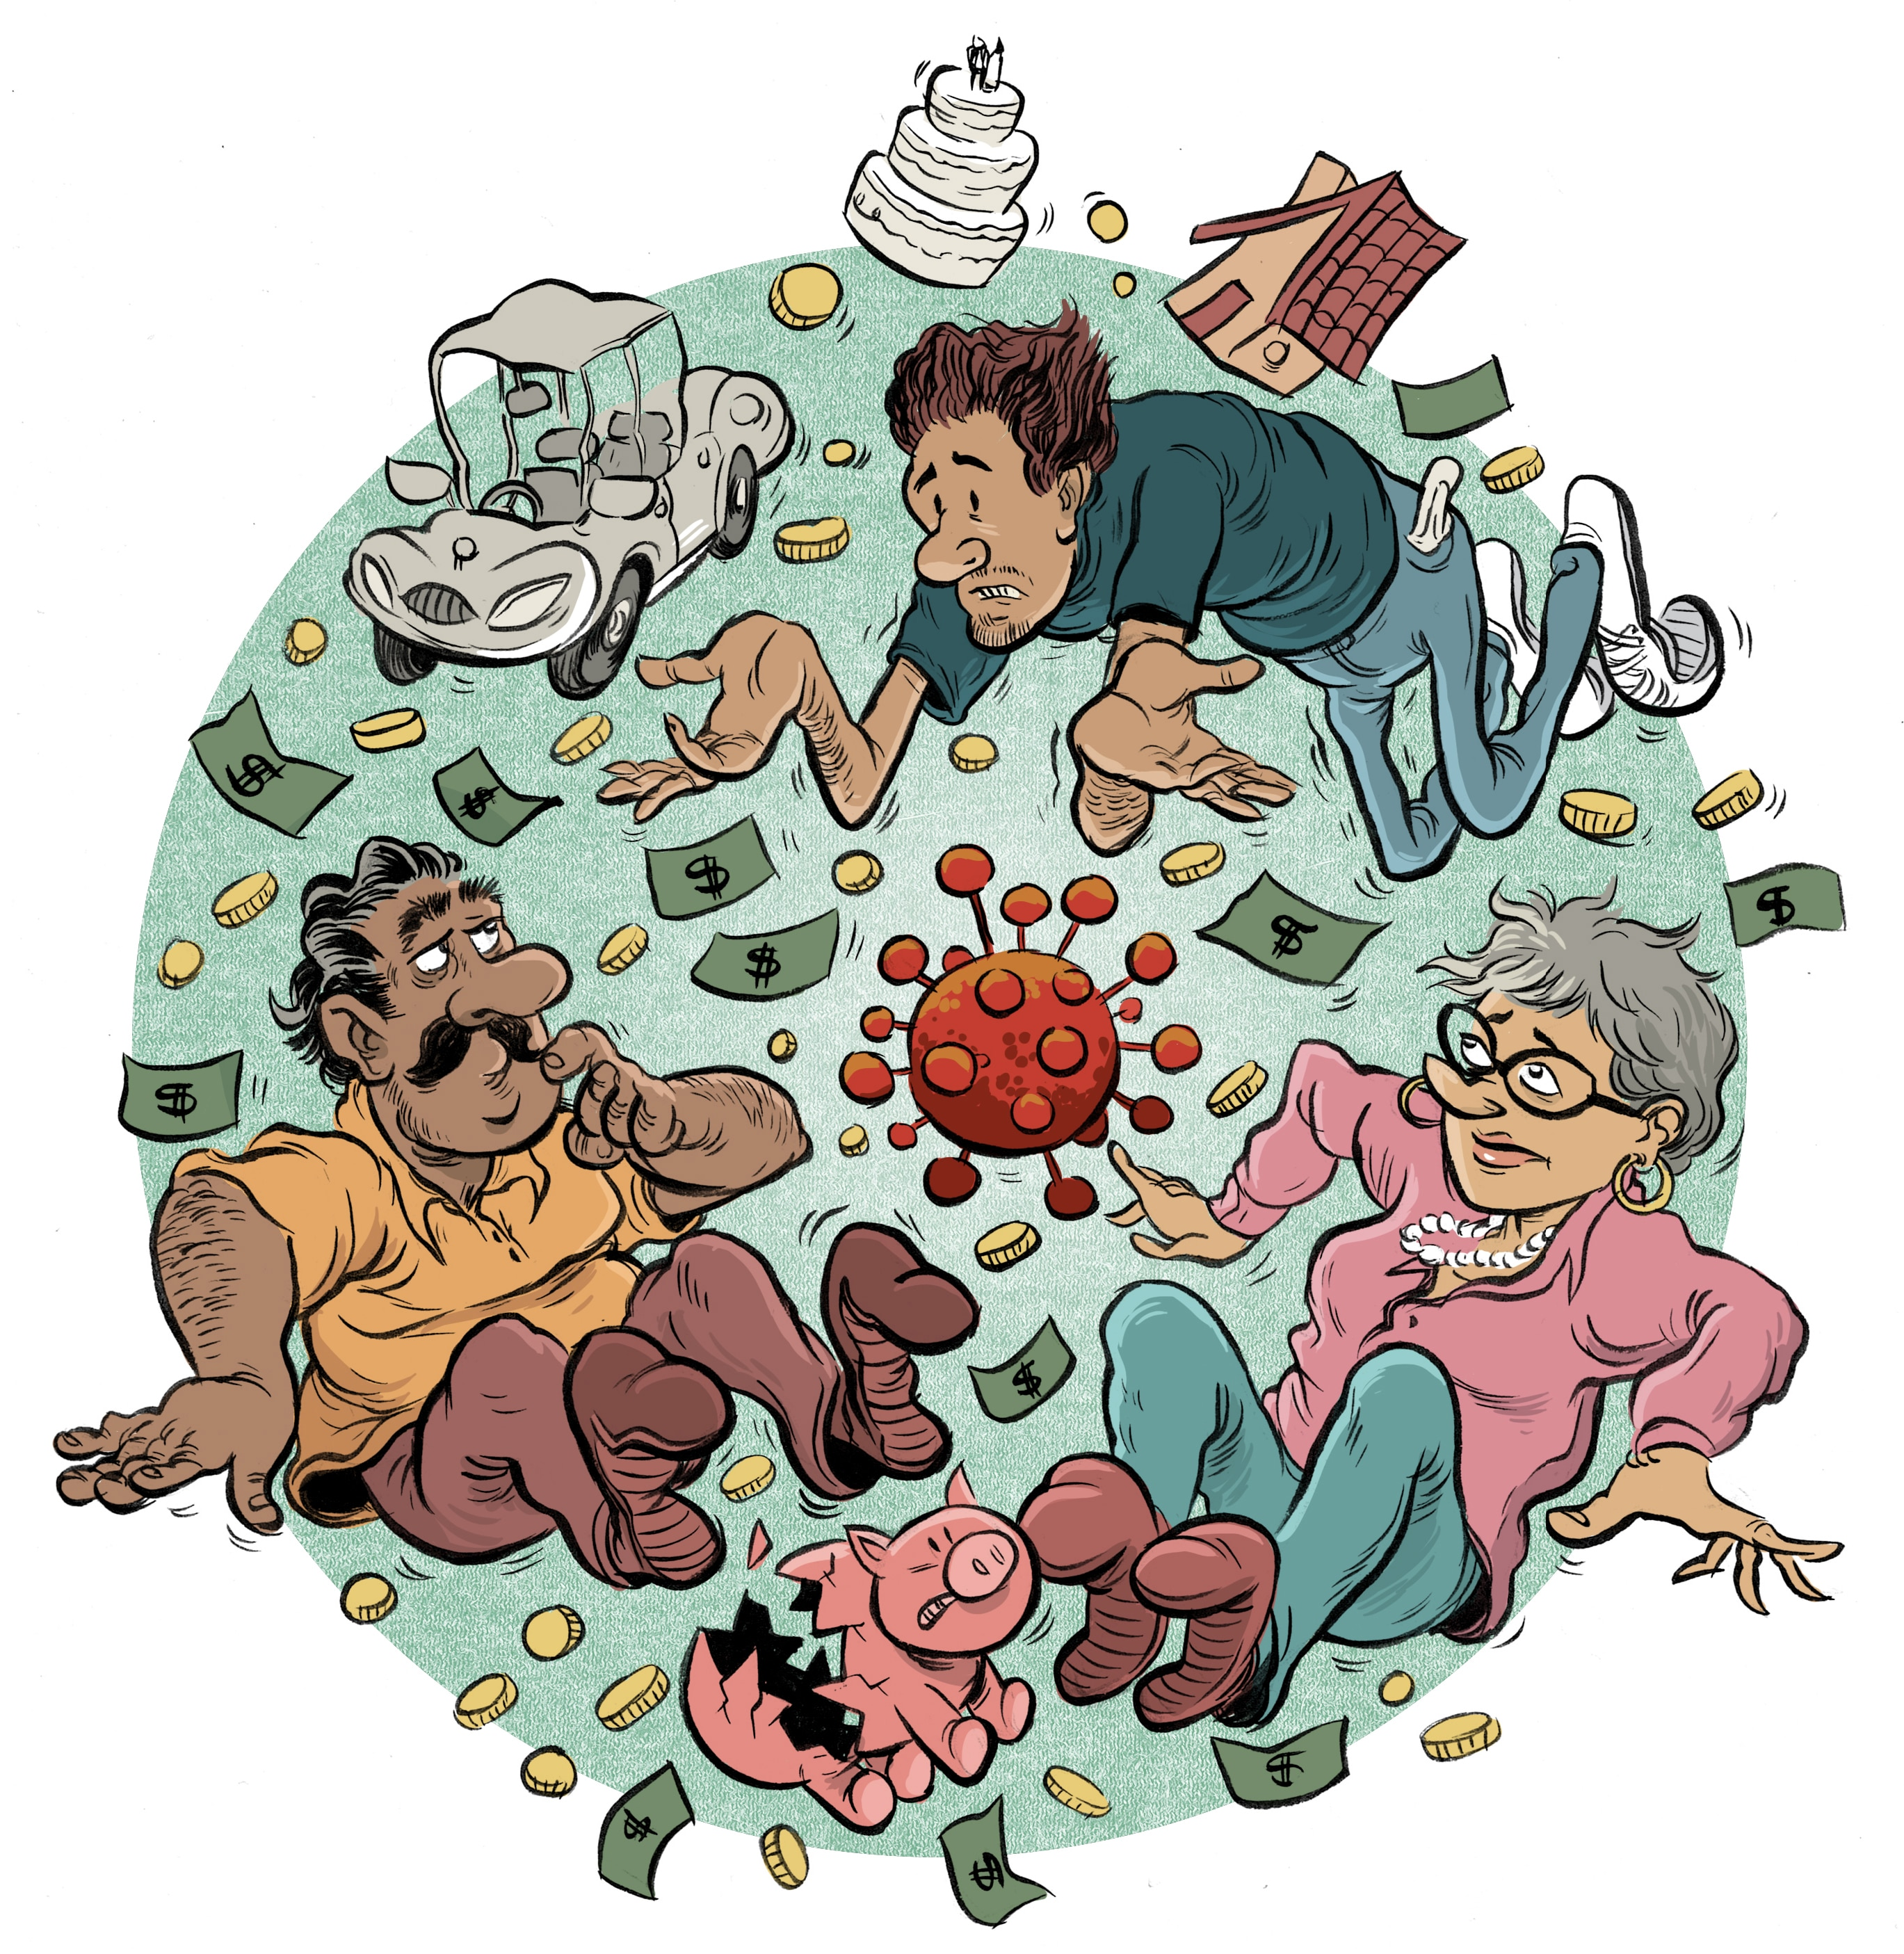 illustration of kids and parents with financial imagery